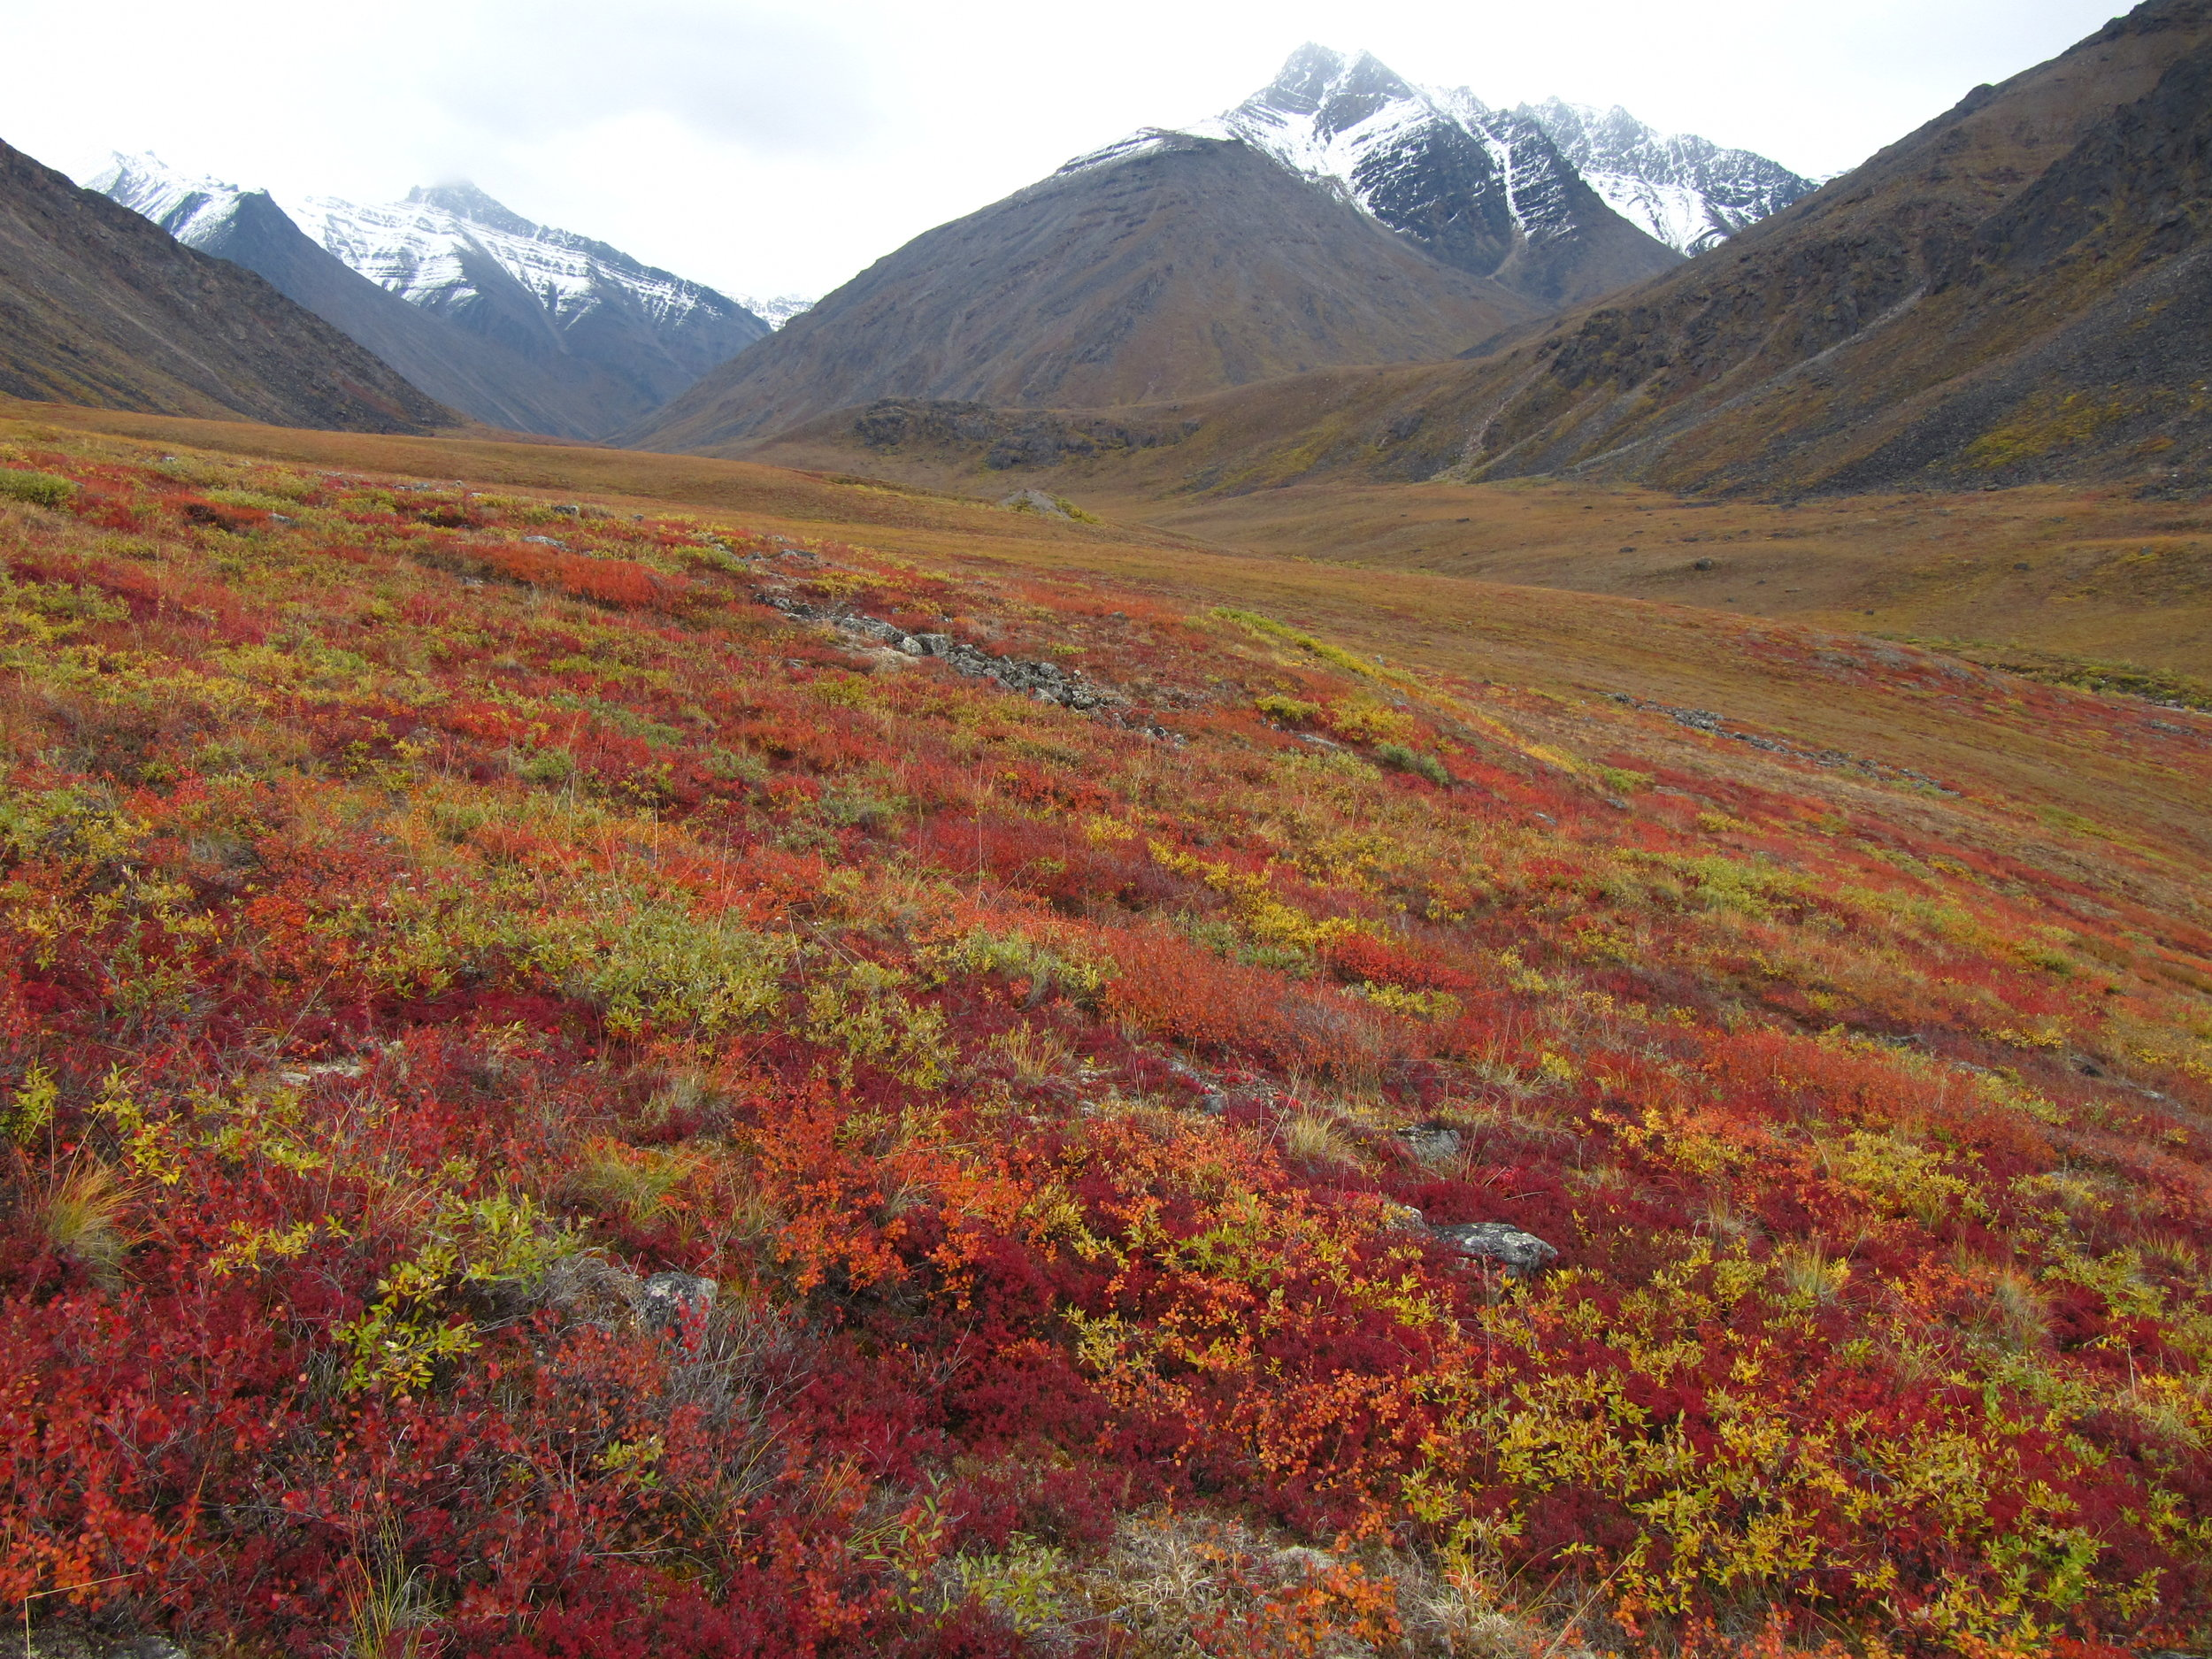 Autumn colors sweep across the tundra near Galbraith Lake. Photo by Jason Neely